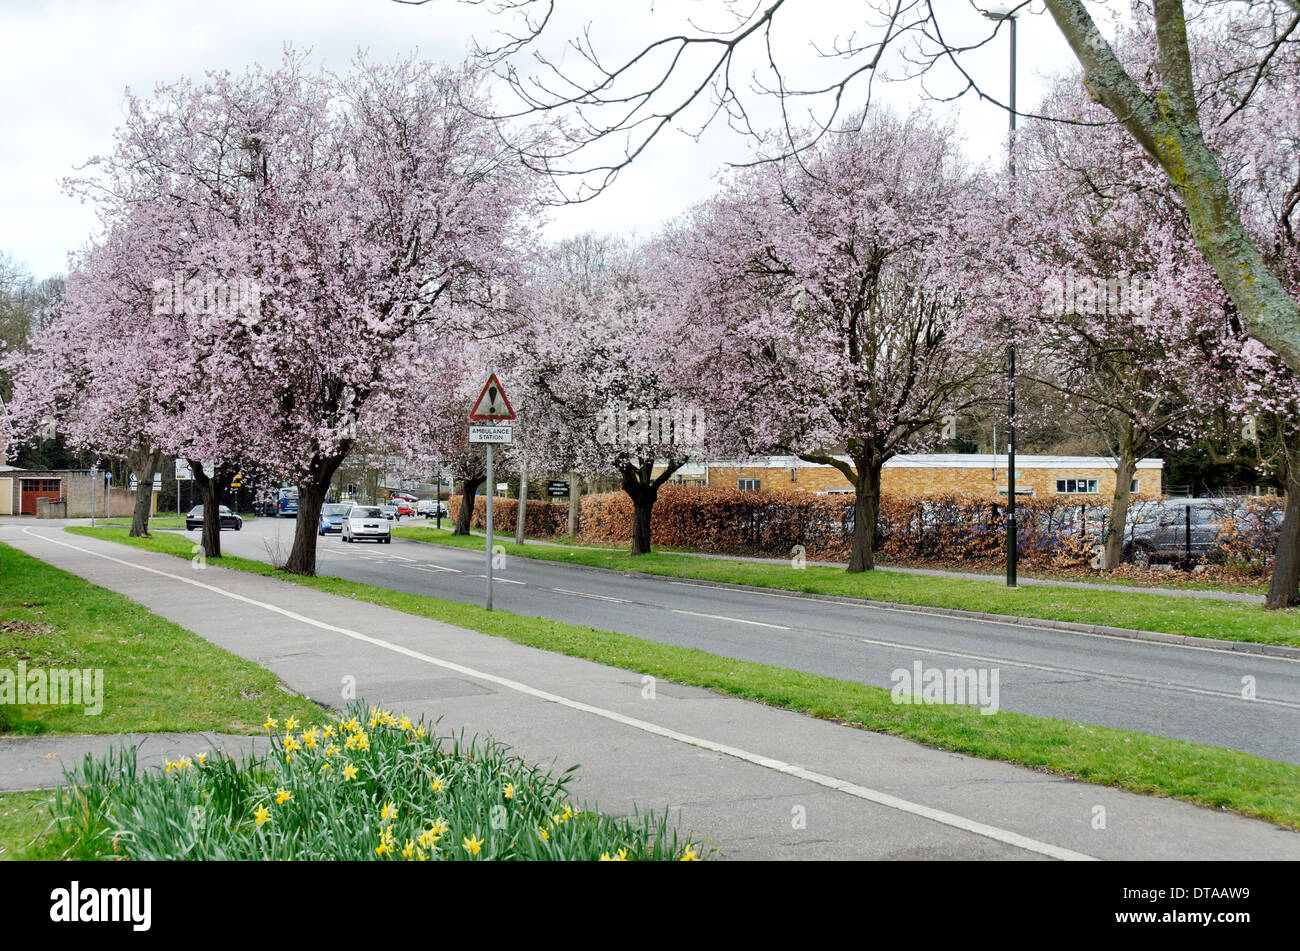 Daffodils & Flowering Ornamental Cherry Trees, Ifield Avenue, Crawley, West Sussex, England - Stock Image